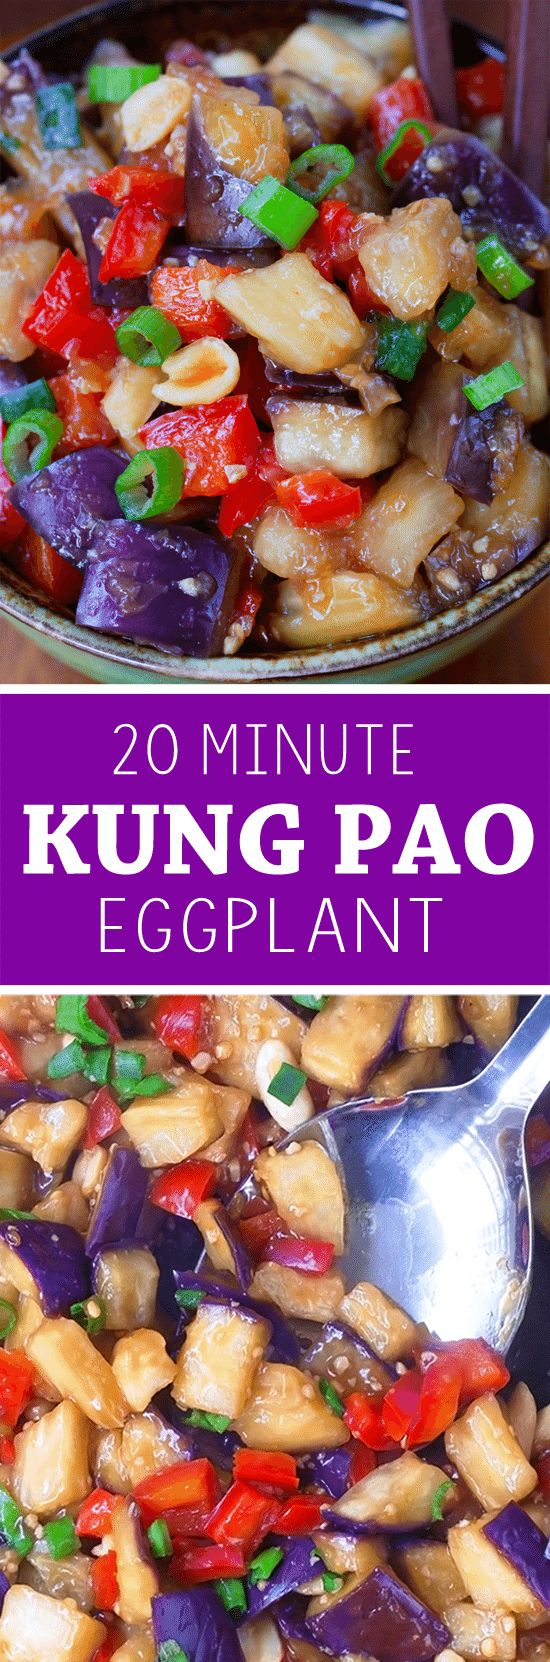 A delicious & wholesome alternative to Chinese takeout, without all the extra fat and calories!